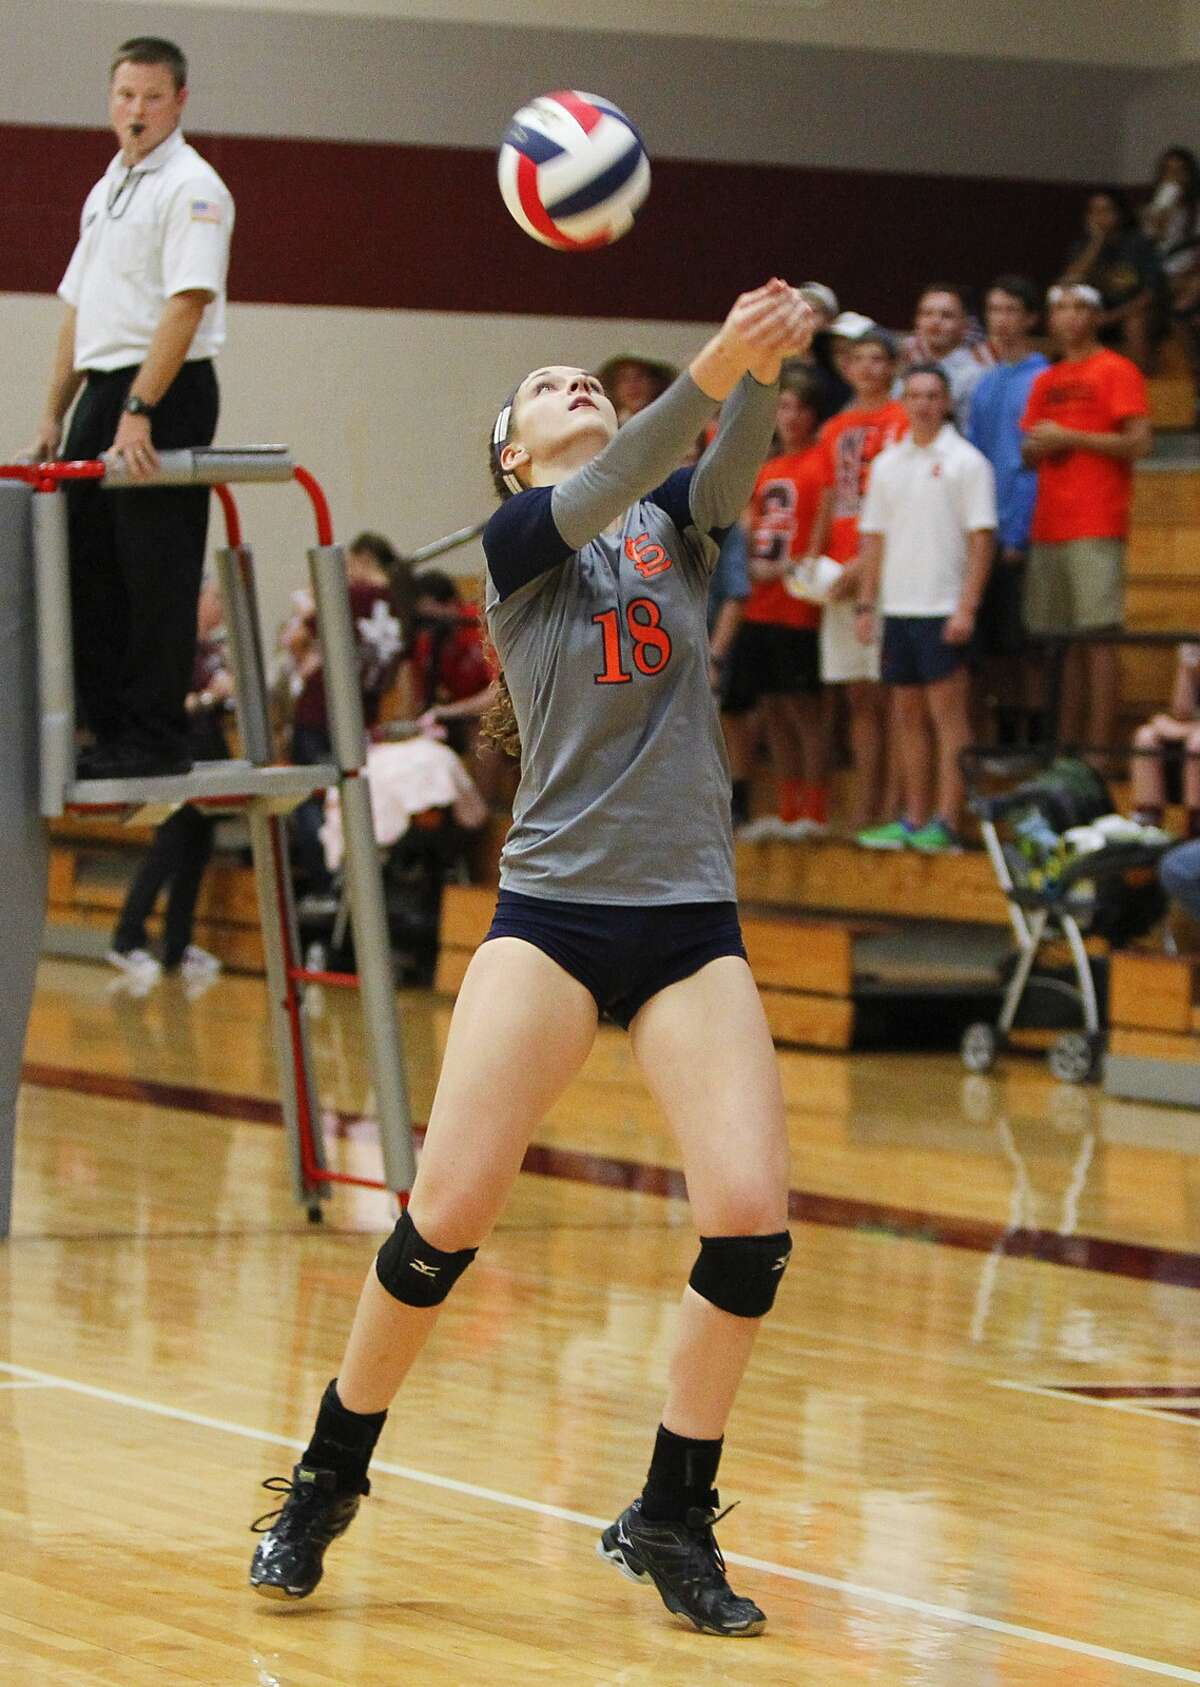 Seven Lakes' Camille Conner volleys the ball back to Cinco Ranch as they two teams faced off at Cinco Ranch High School in Katy on September 26, 2014.